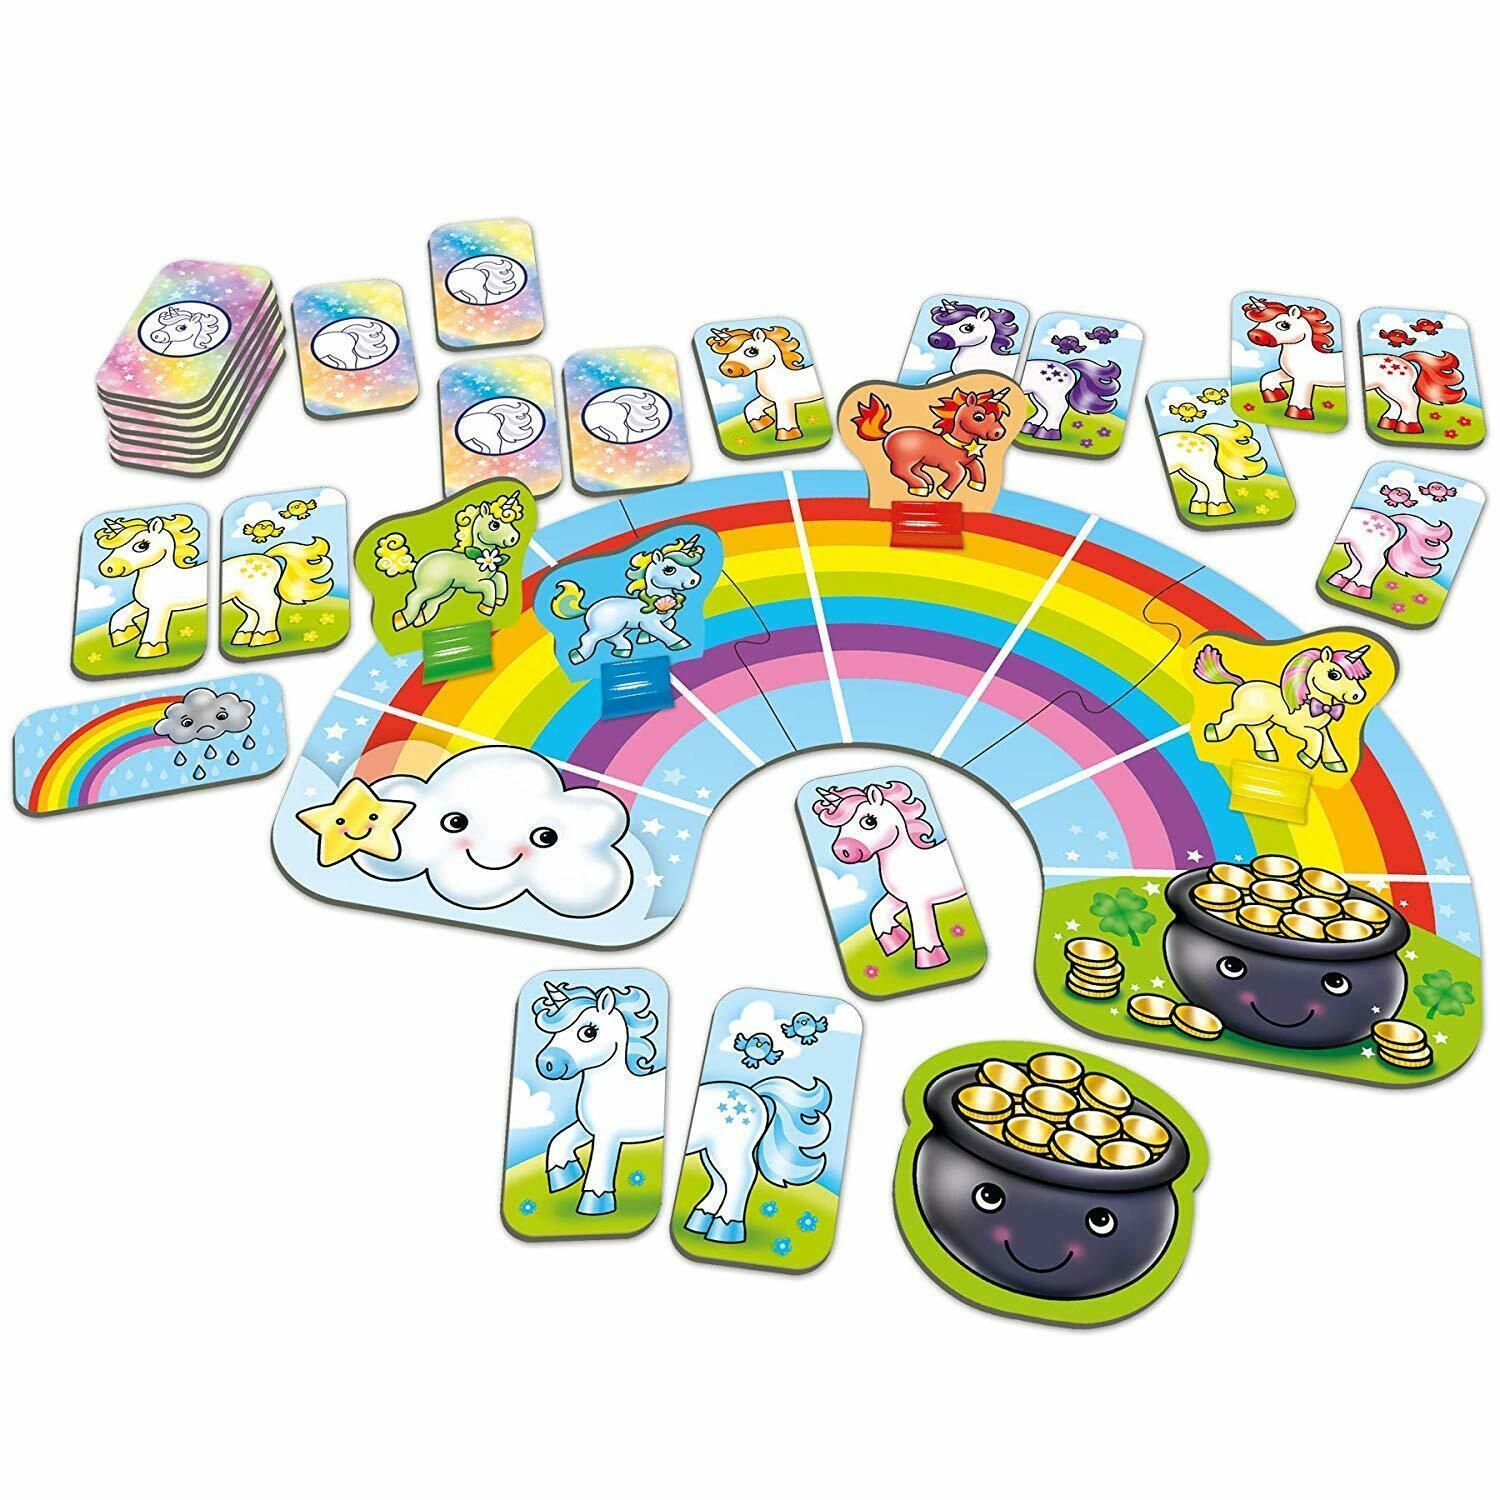 thumbnail 238 - Orchard Toys Educational Games For Kids Choose Game From Drop Down Menu